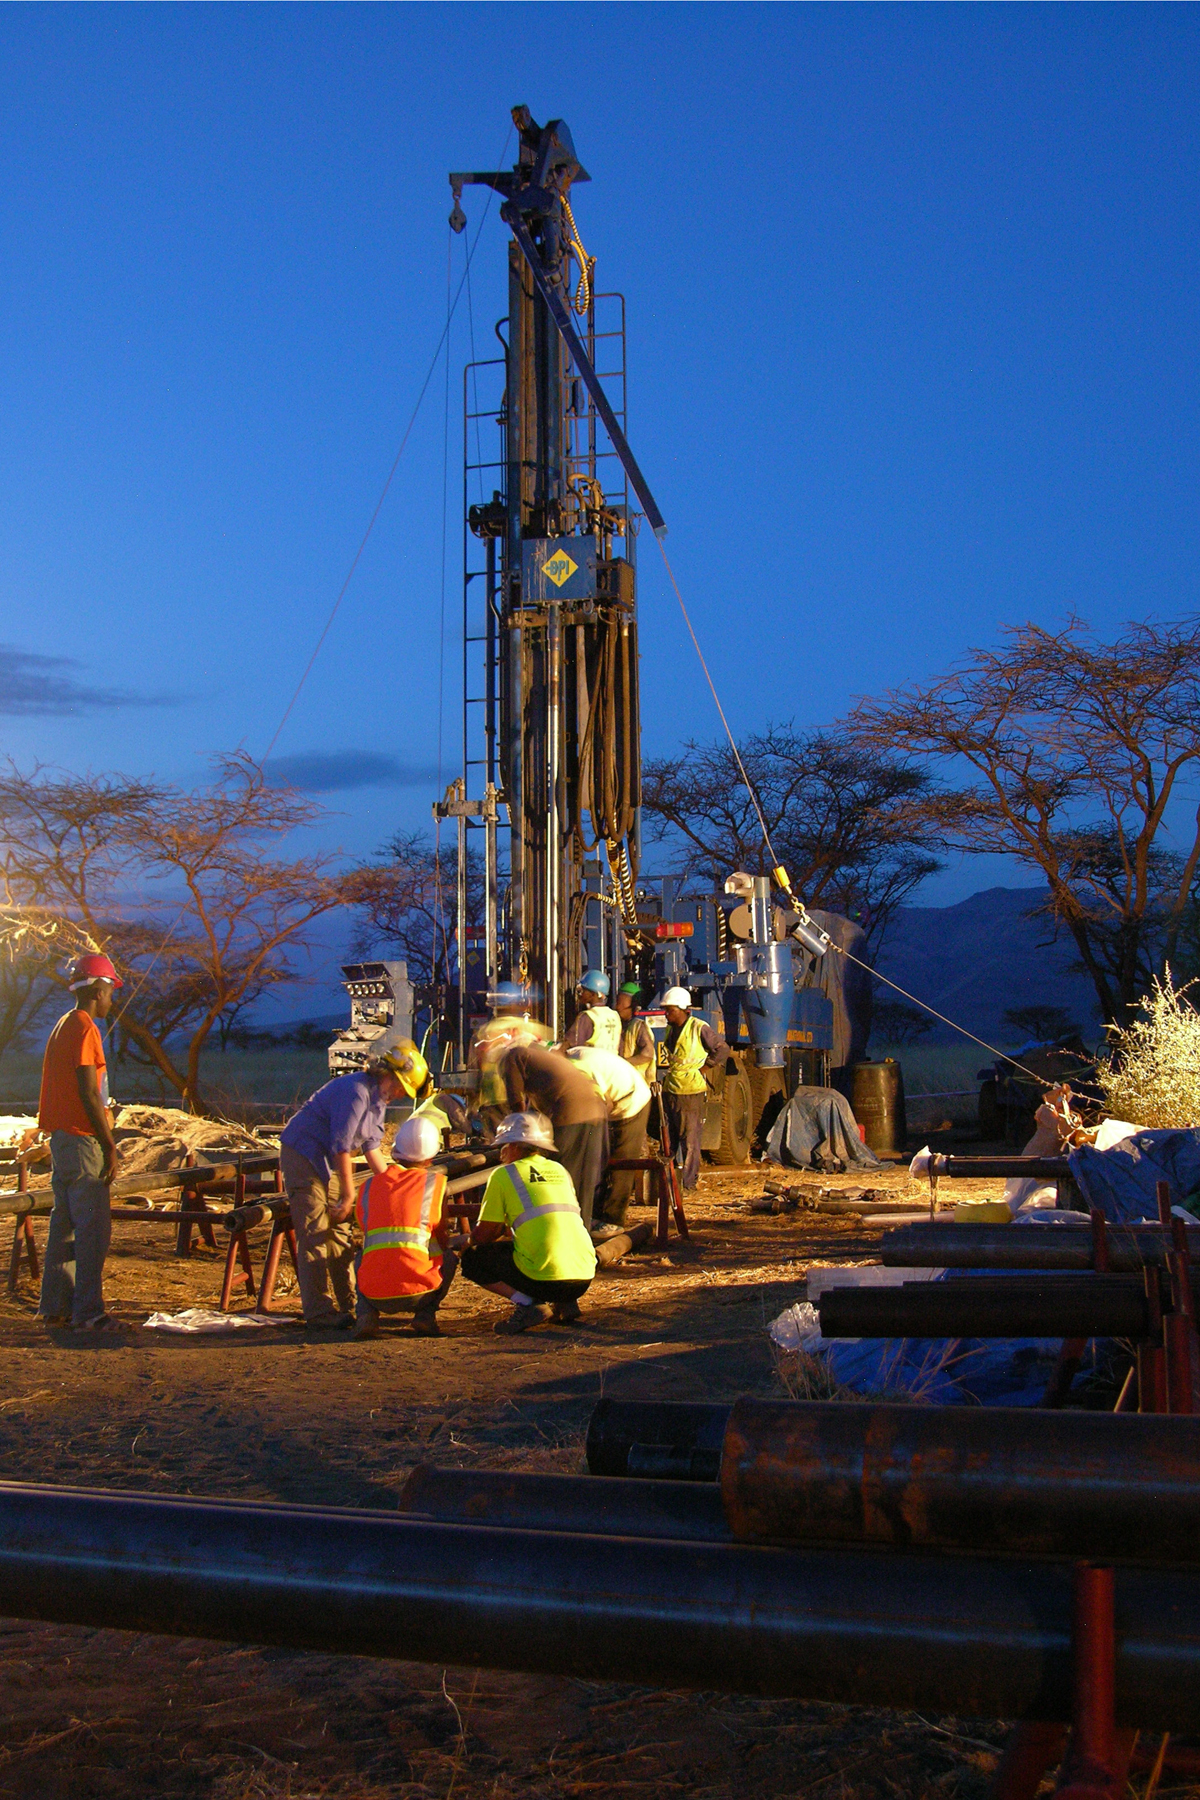 Potts's American and Kenyan team of drillers and core-recovery experts undertook day- and night-time drilling